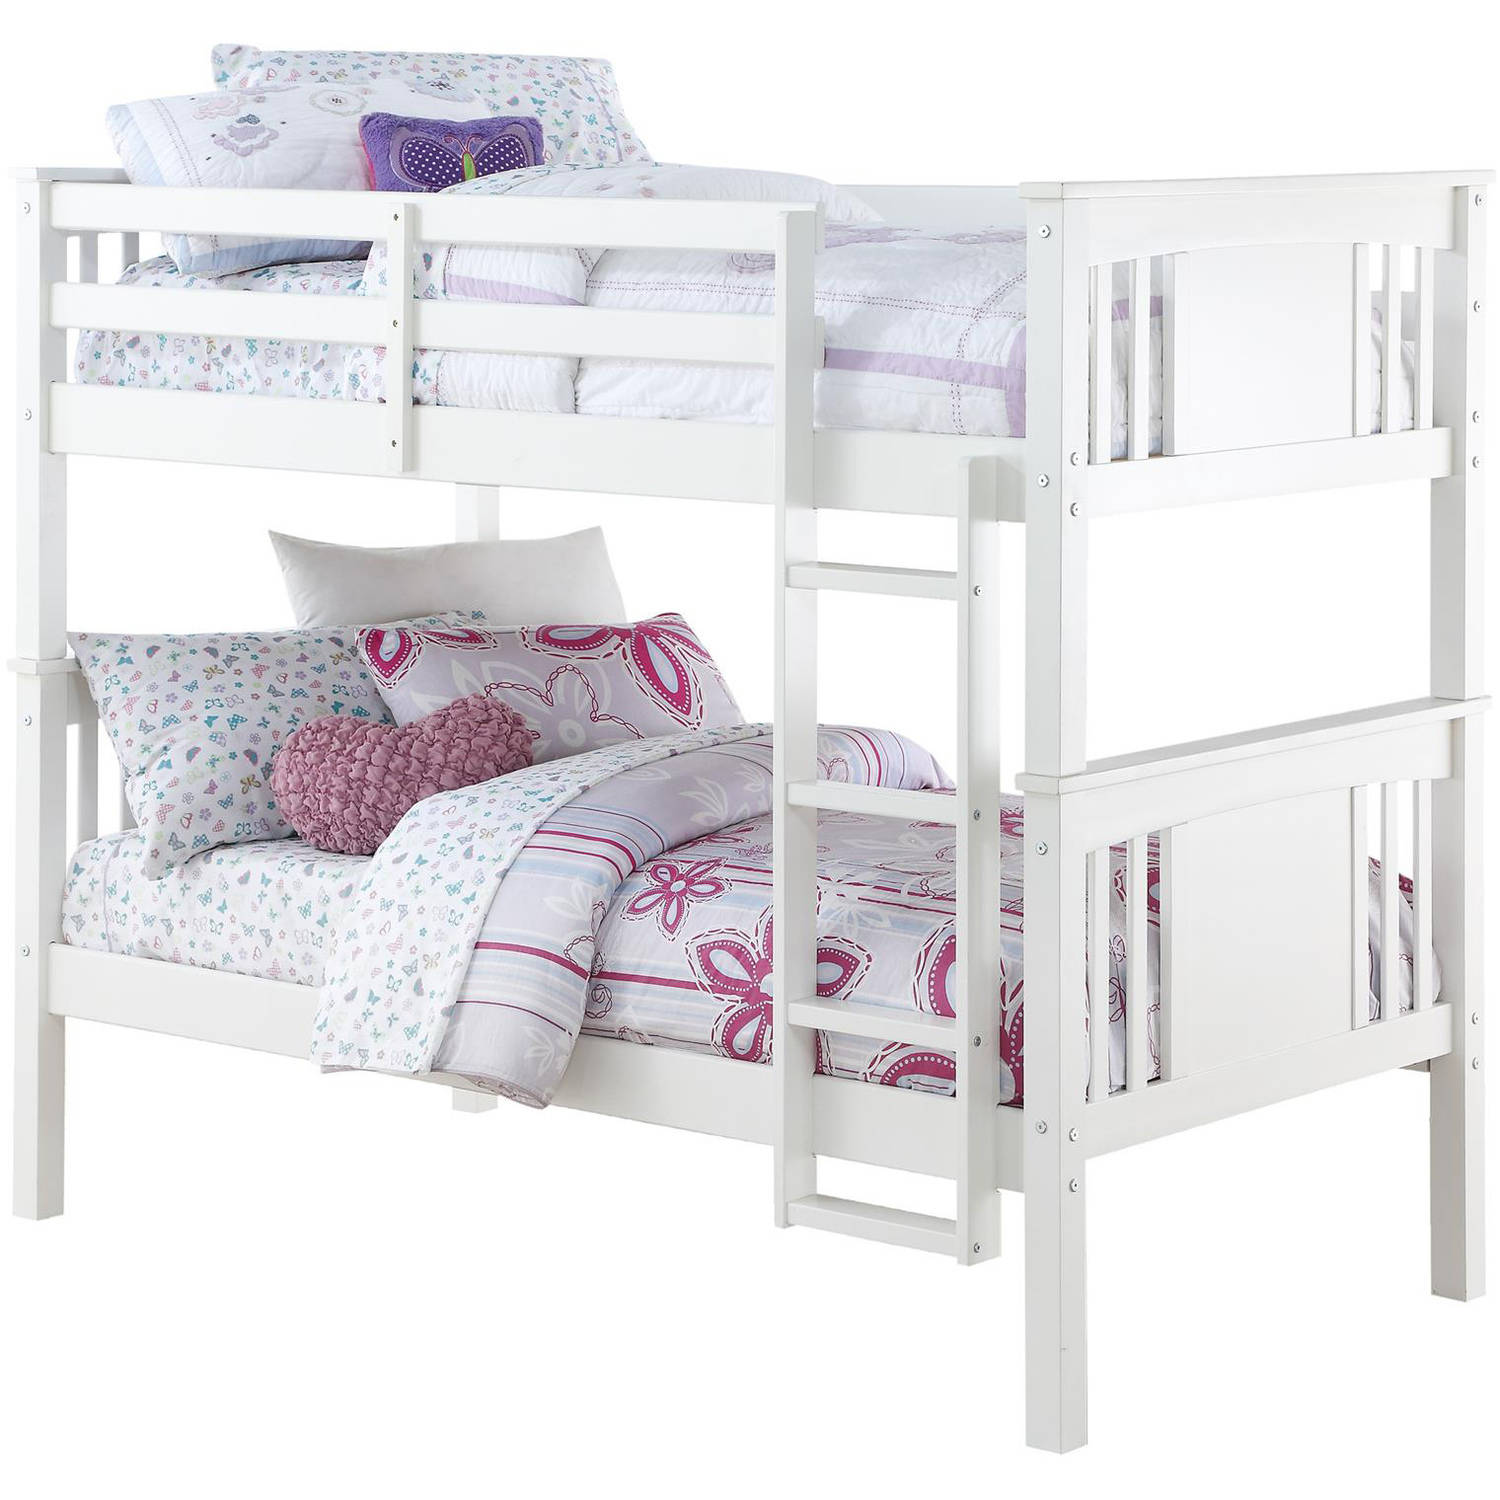 Better Homes and Gardens Flynn Twin Wood Bunk Bed, Multiple Colors